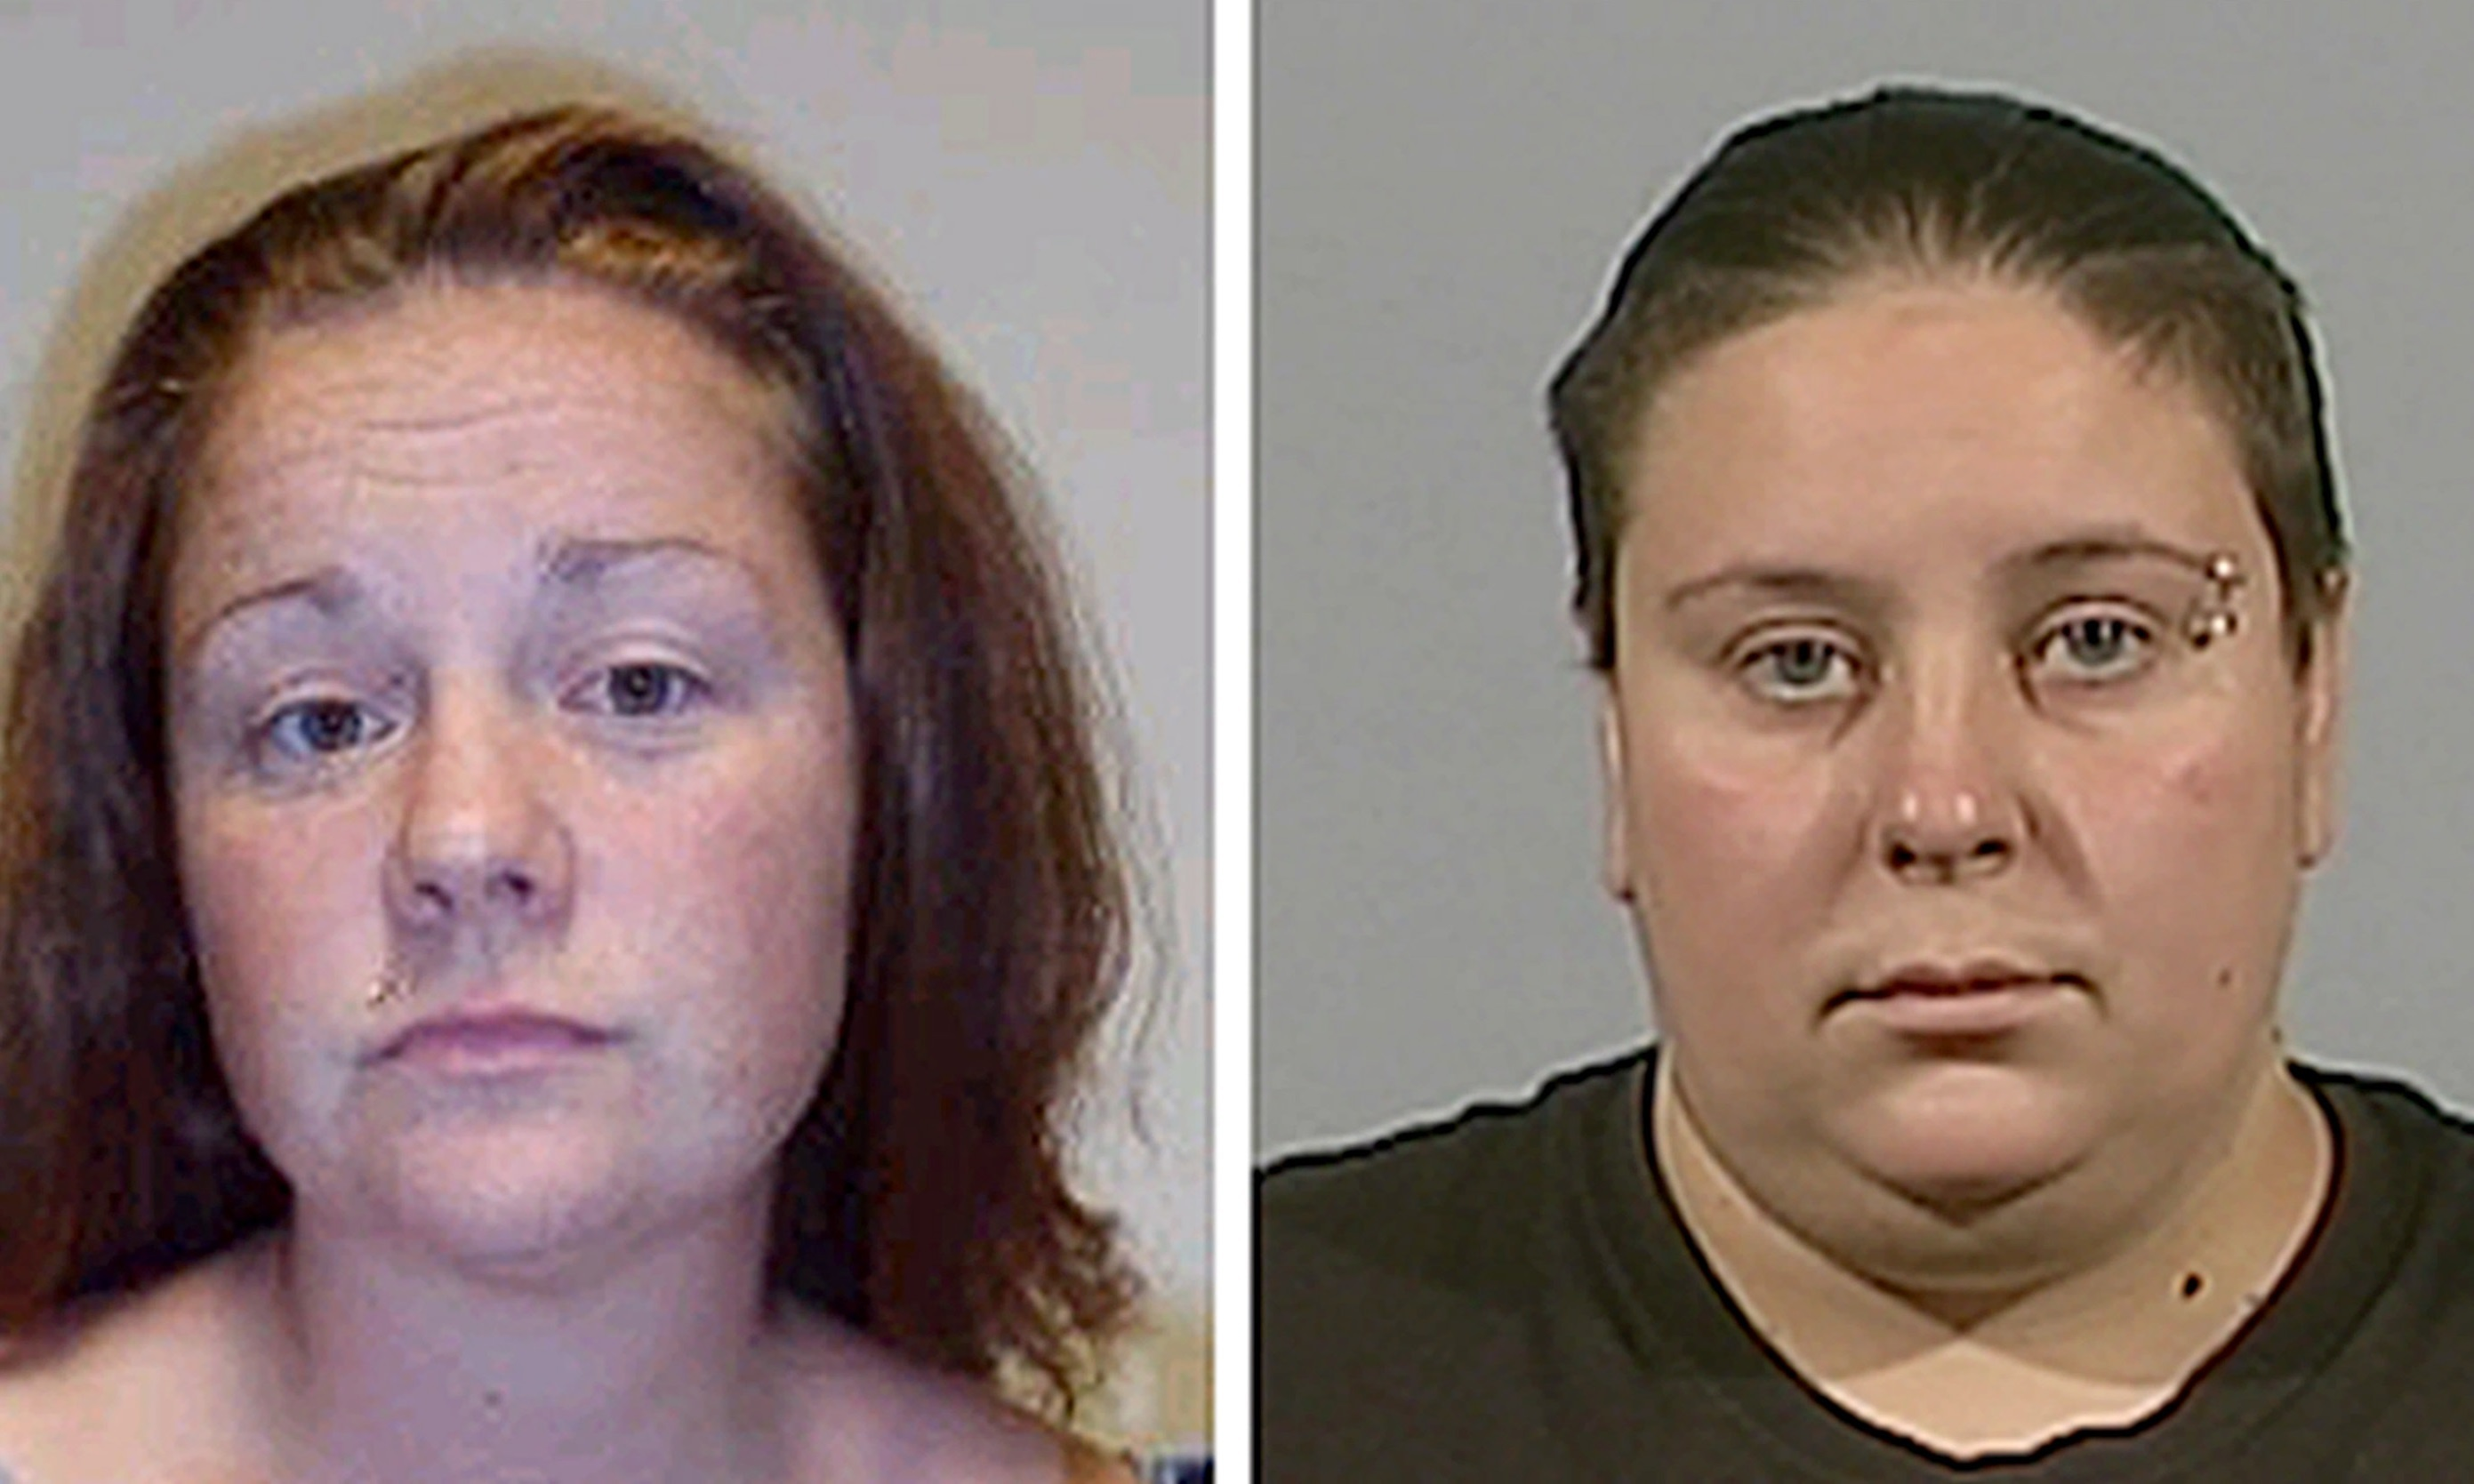 The murder trial of Rachel Fee (left) and her partner Nyomi Fee was regarded as one of the most traumatic for jurors in recent memory.